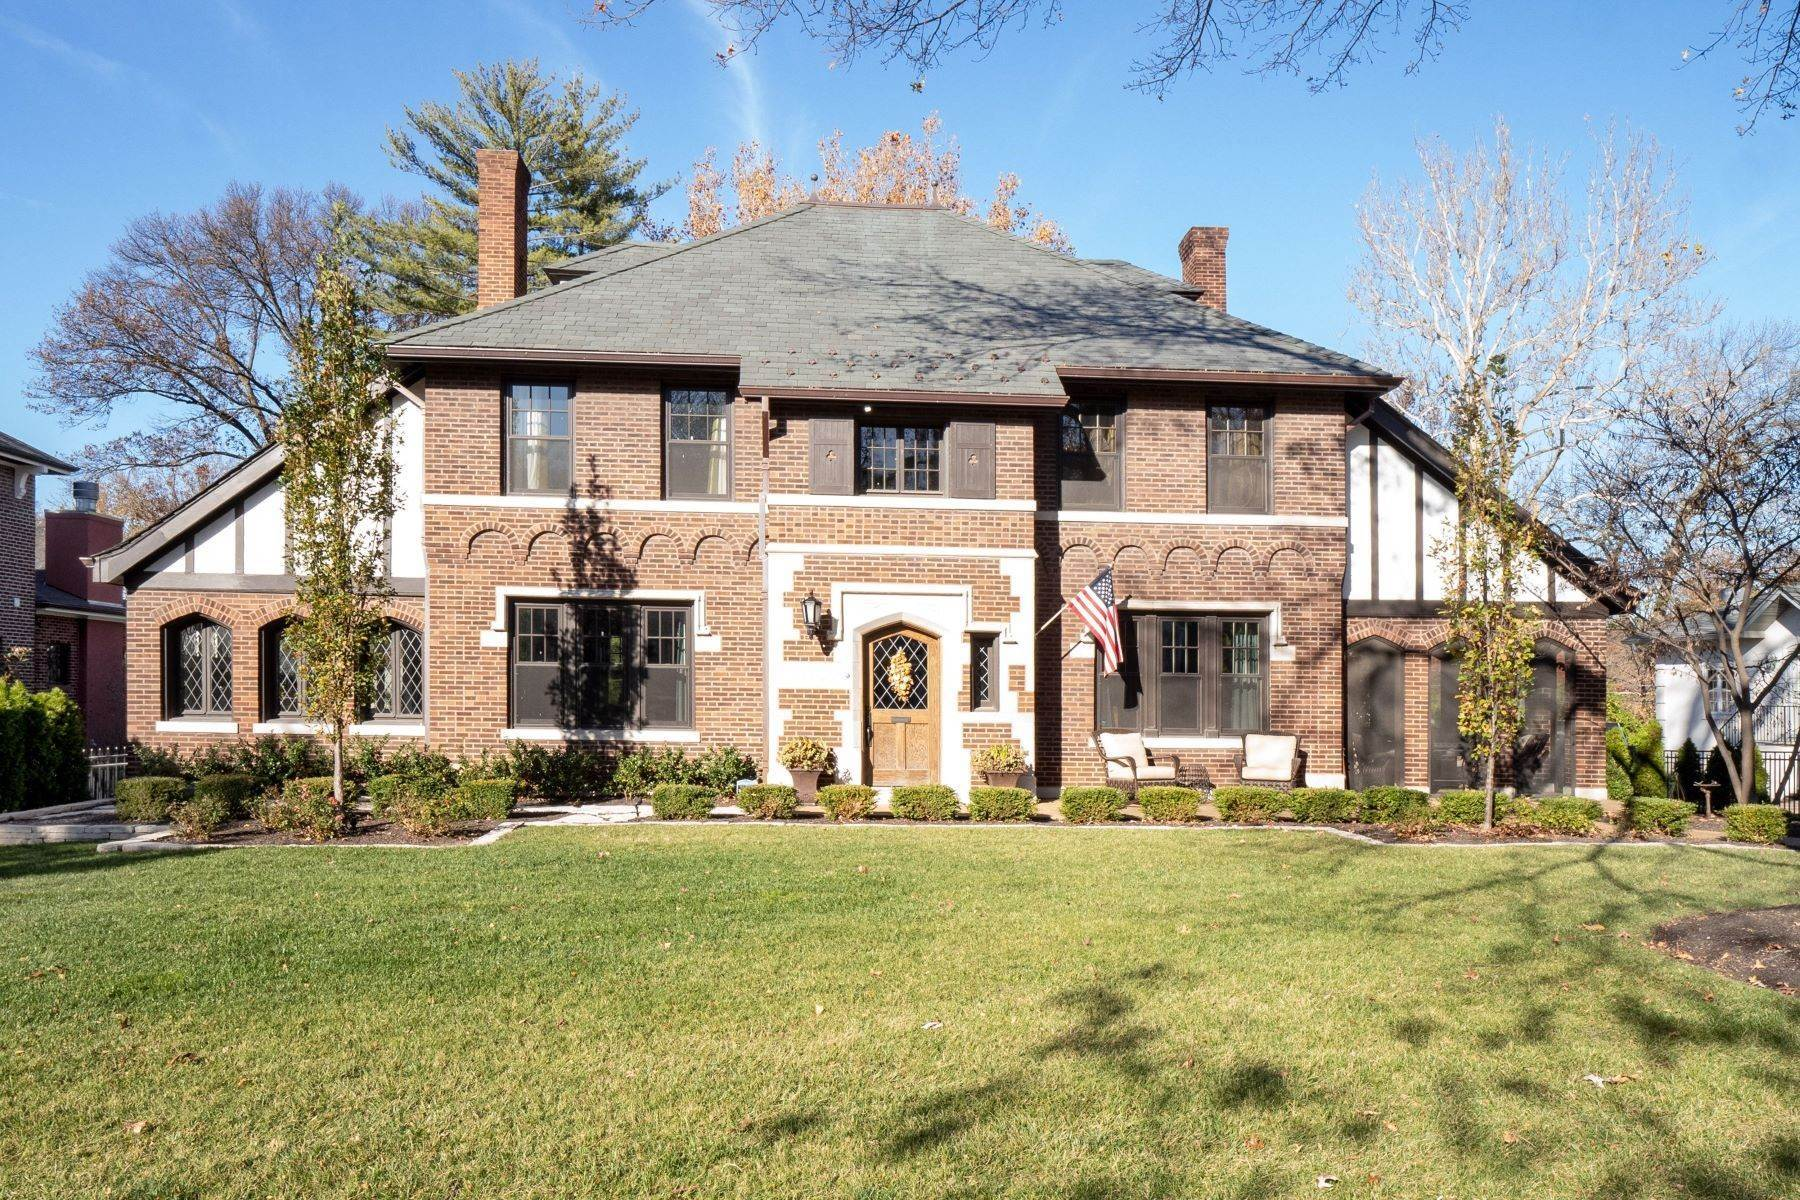 Single Family Homes for Sale at Charming U-City Home with Exceptional Craftsmanship 7255 Maryland Avenue University City, Missouri 63130 United States